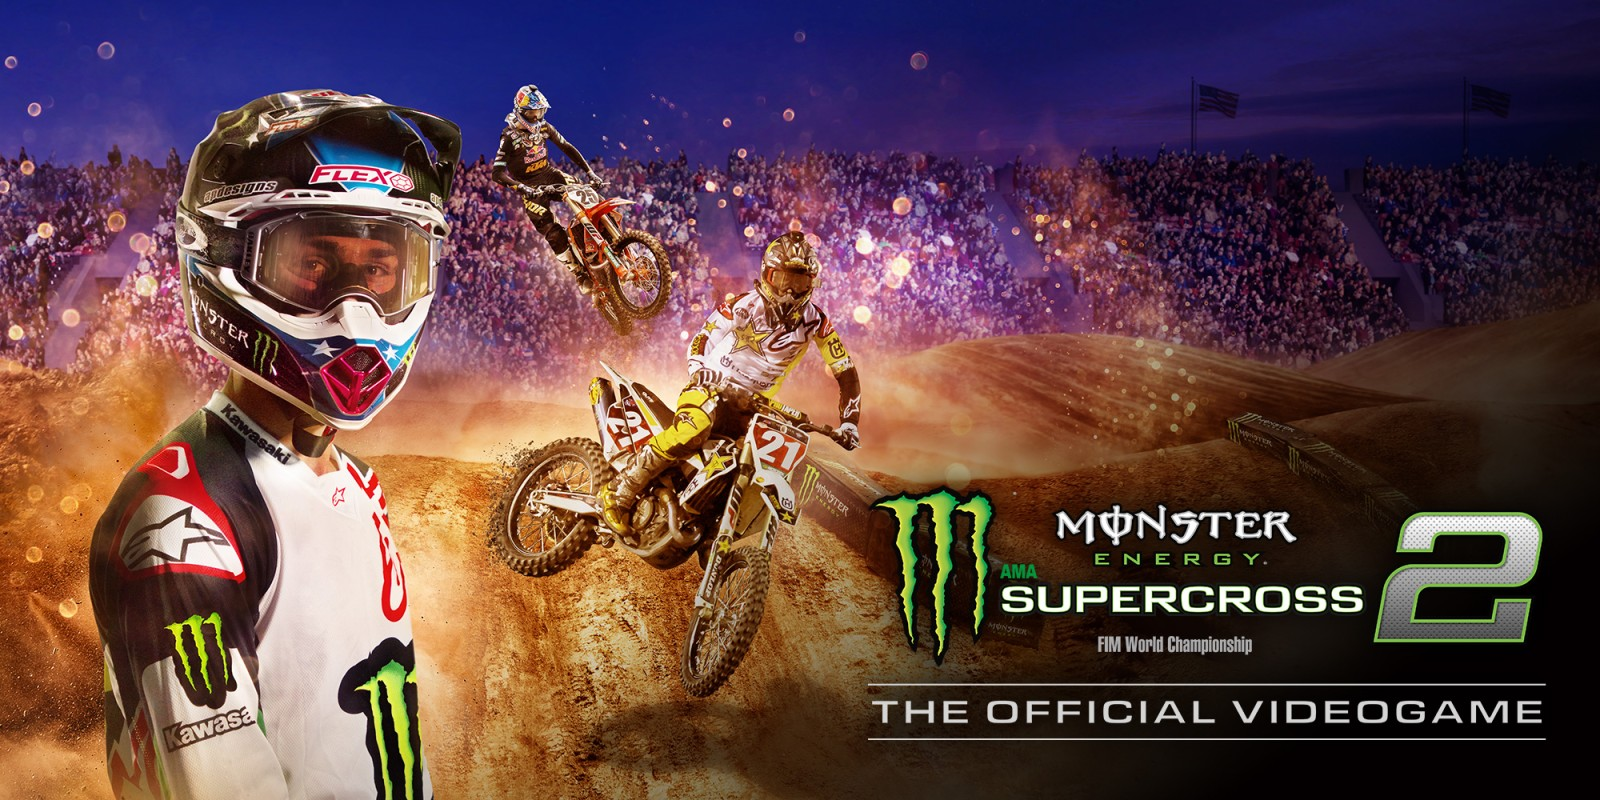 f8e96a5ed Monster Energy Supercross - The Official Videogame 2